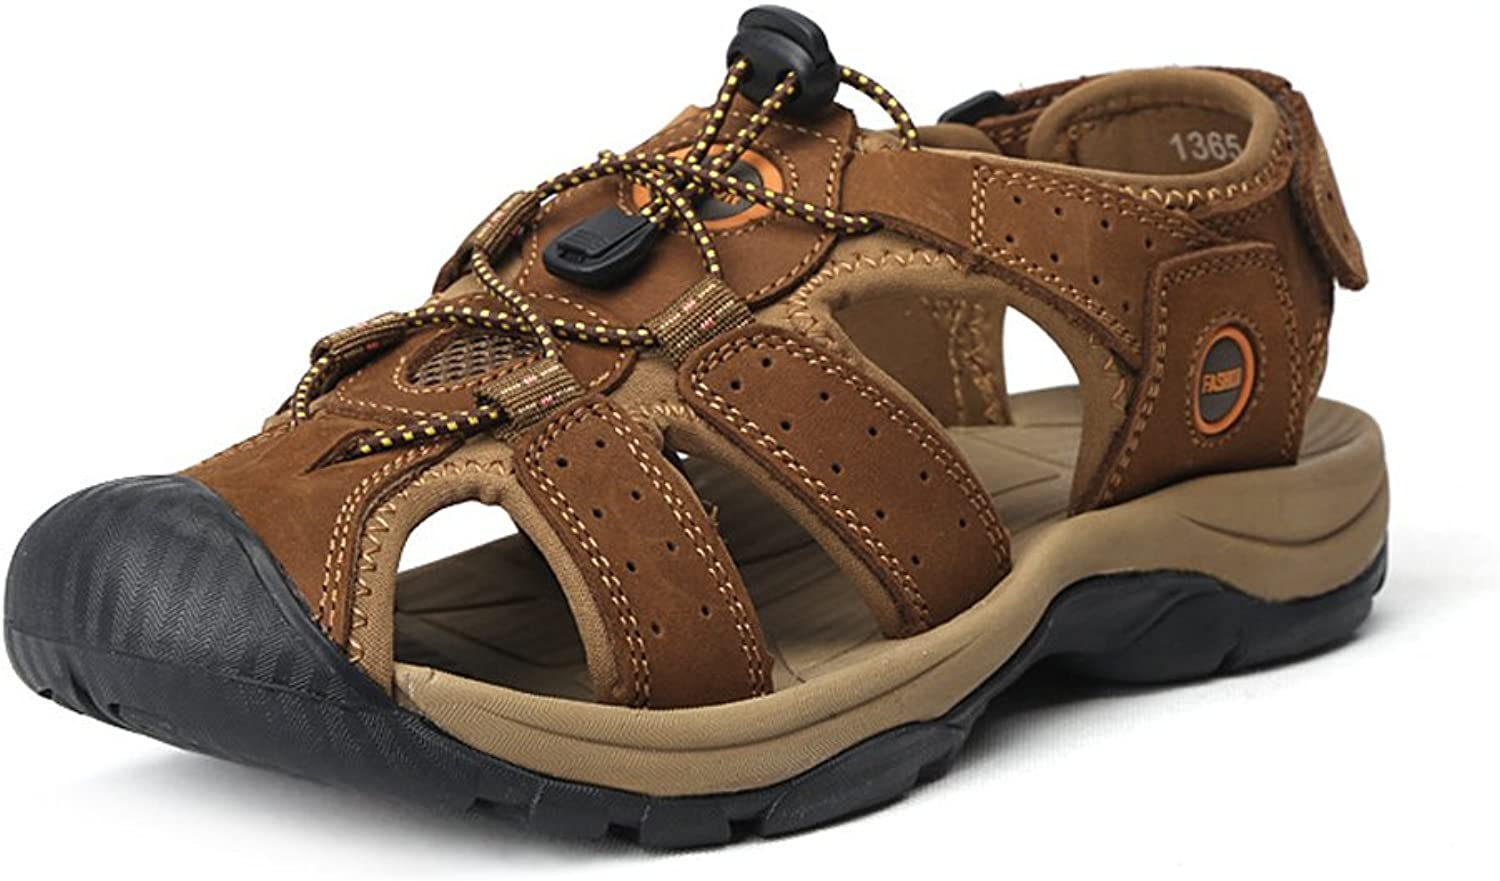 Tuoup Women's Leather Athletic Beach Sandals Hiking Sandles